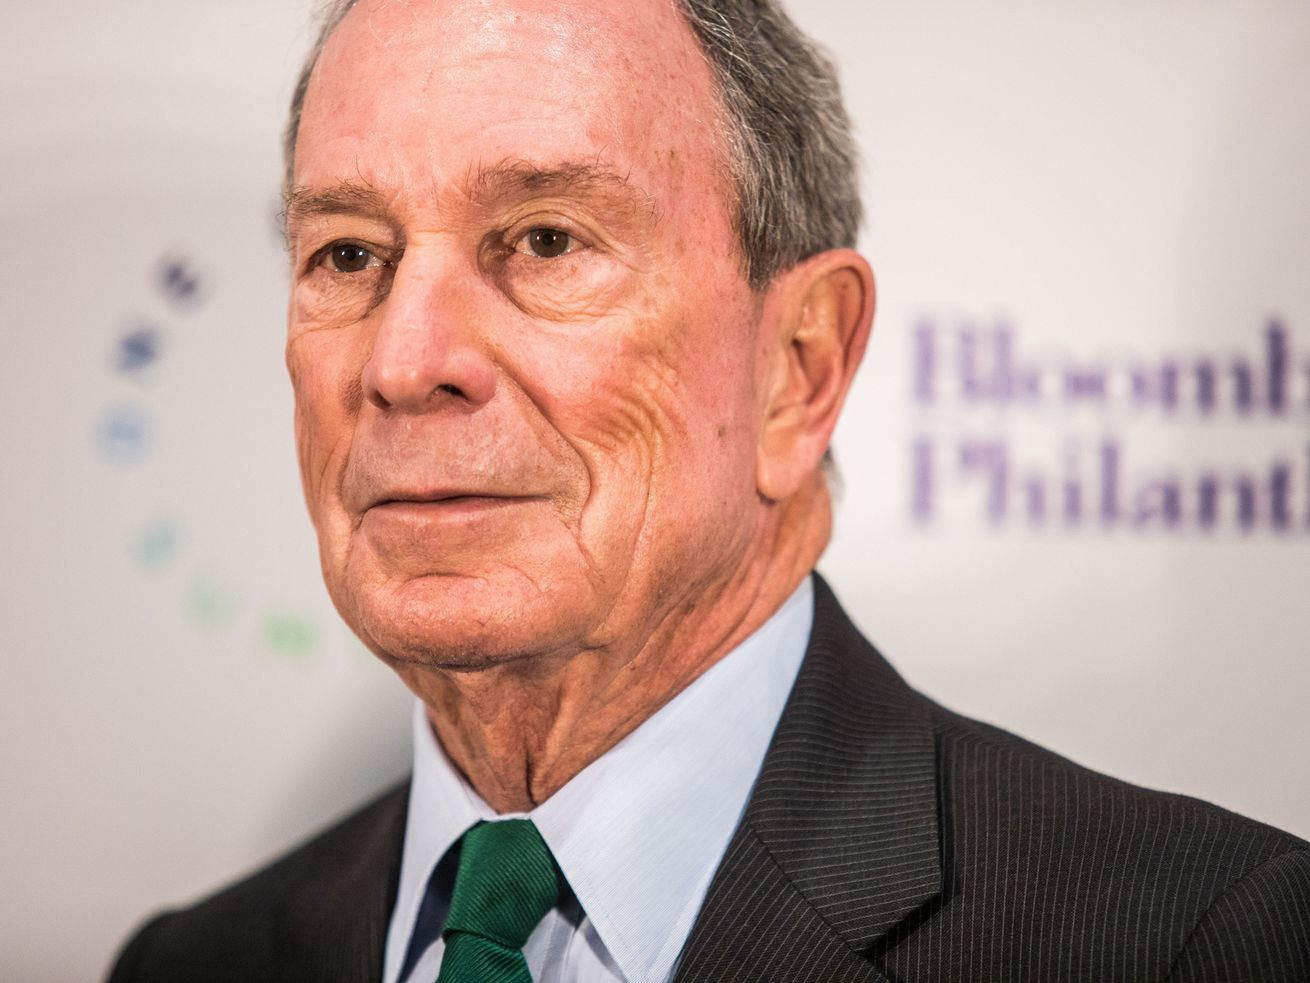 What unites Trump and Bloomberg